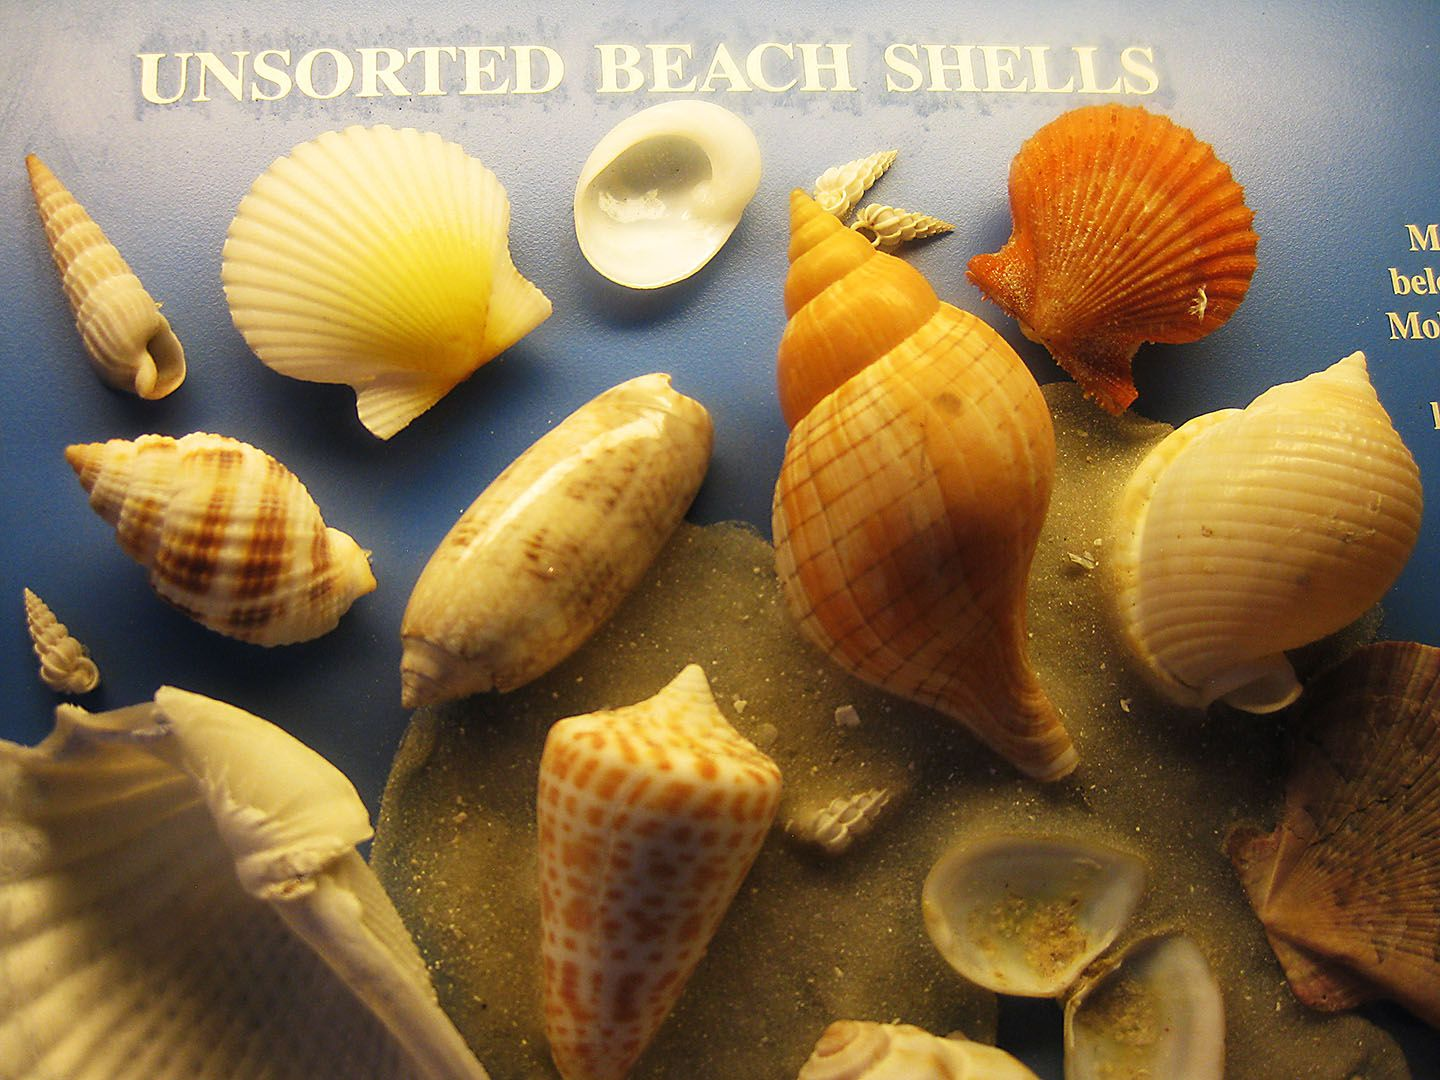 Rare Seashells and Their | seashells of sanibel island from the seashell museum